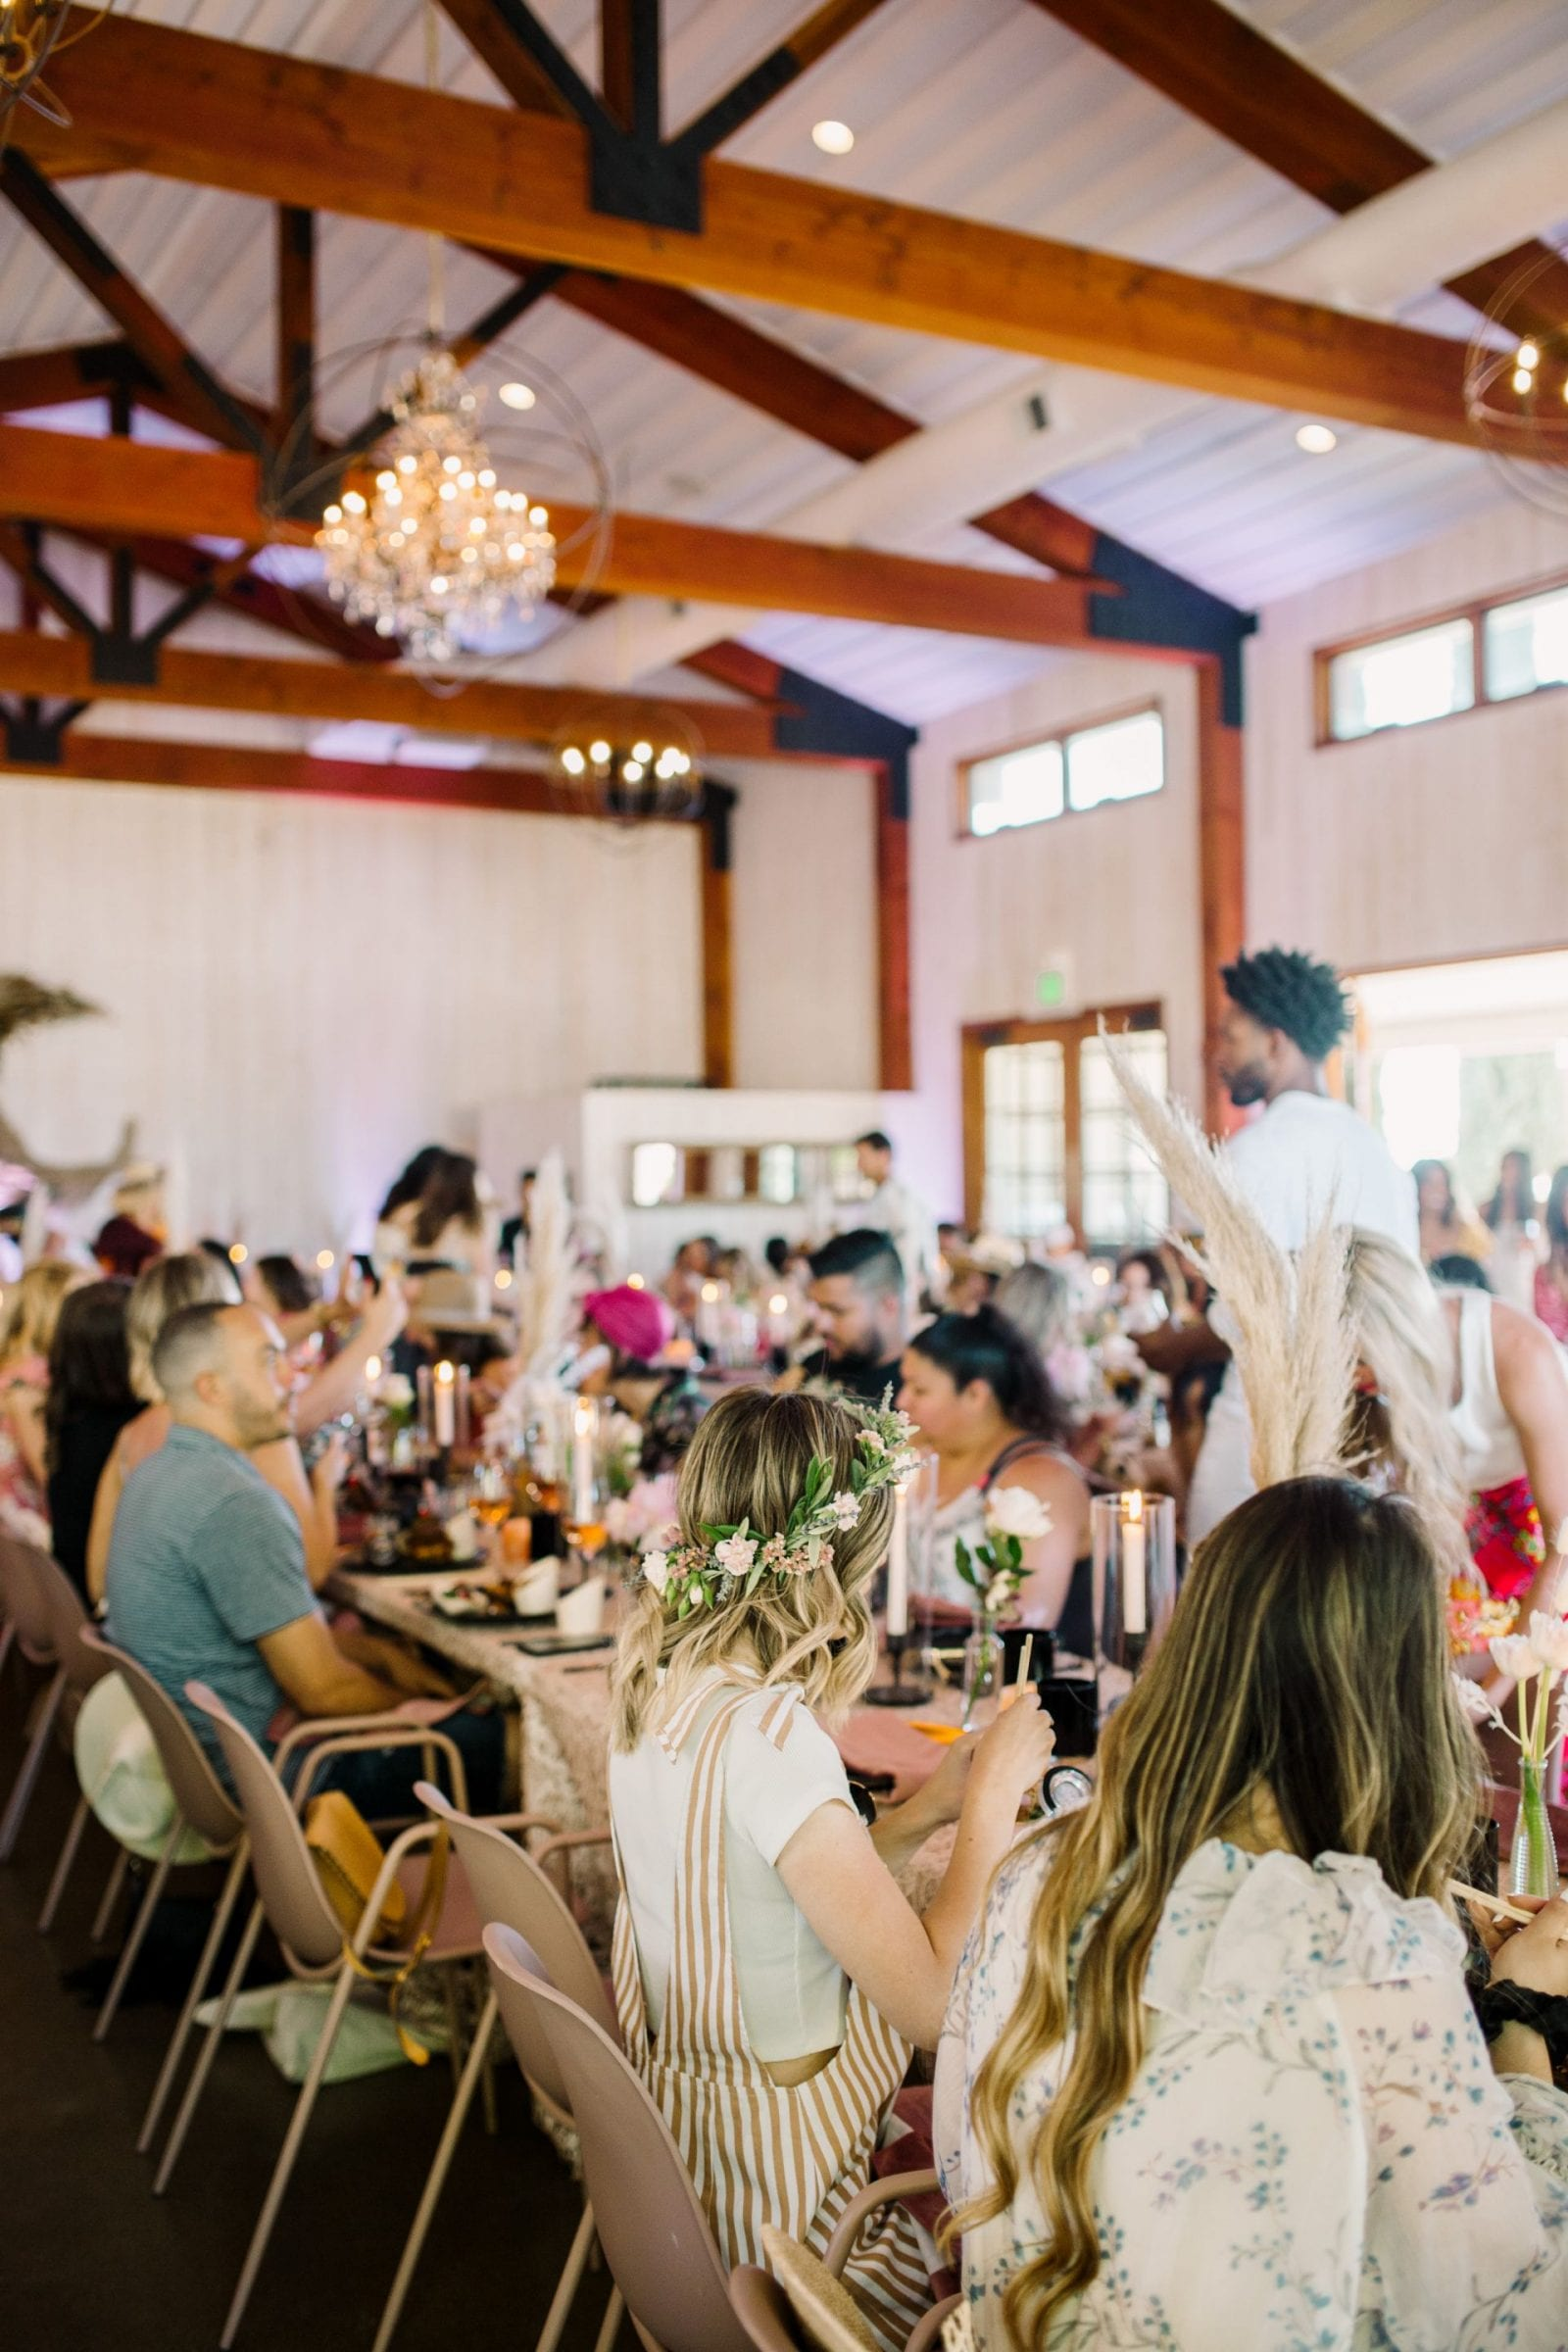 Park Winters Summerland 2019 | Northern California Wedding Event Venue | Summer Party Inspiration | SarahMichiko.com